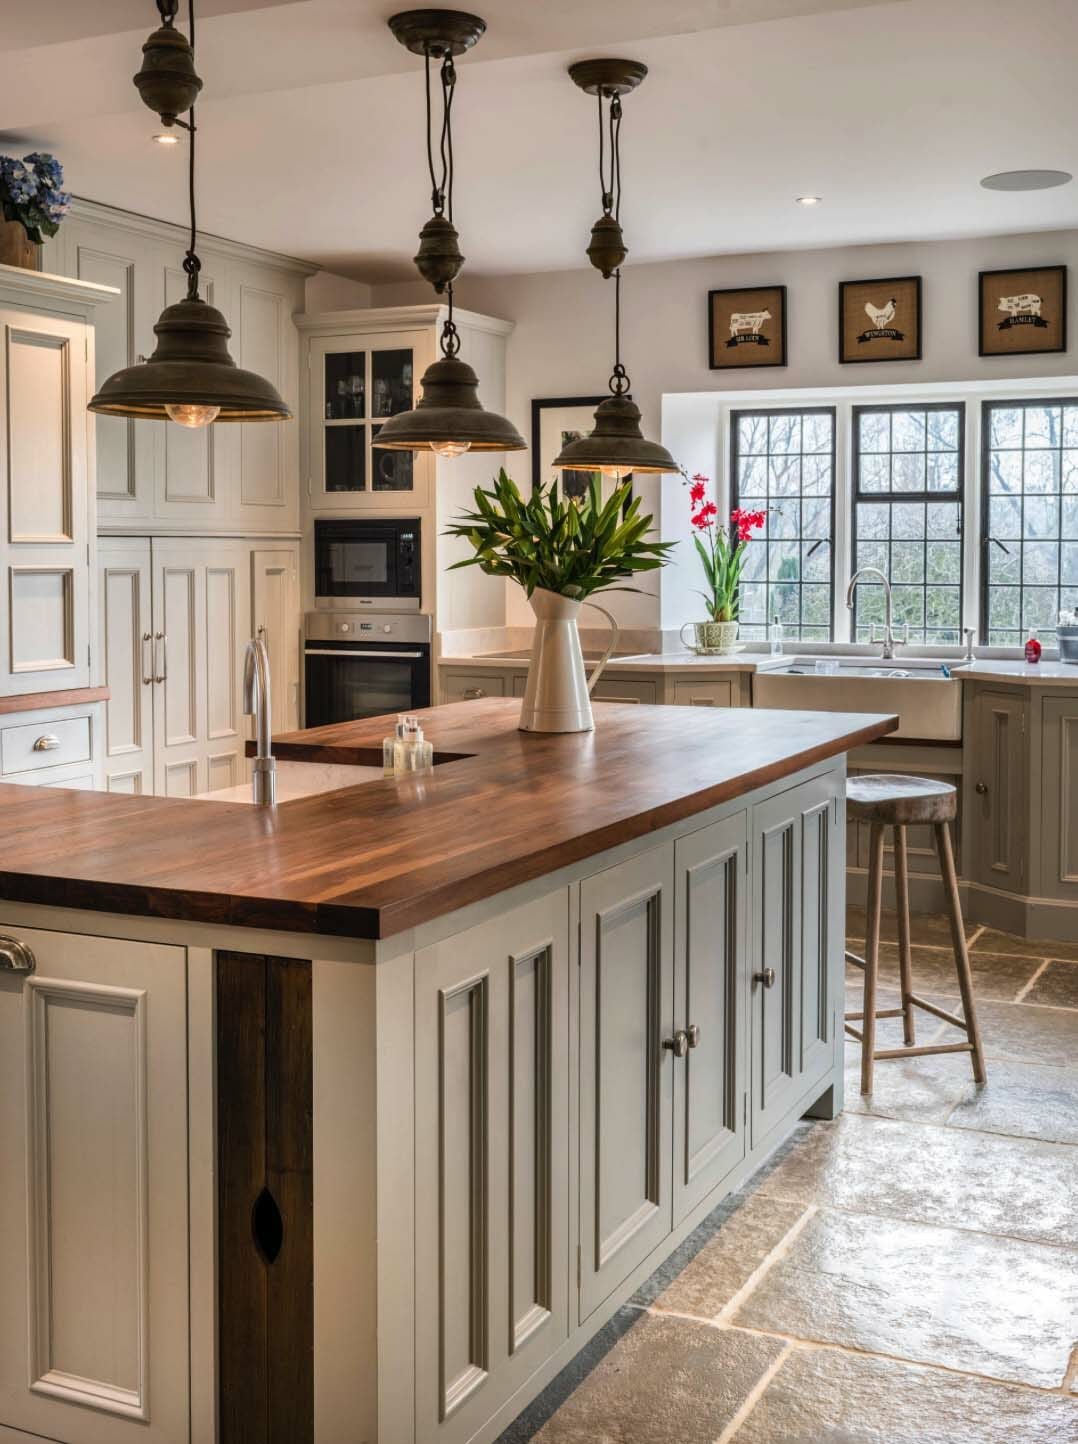 25 Farmhouse Kitchen Decor Ideas Youll Want To Copy